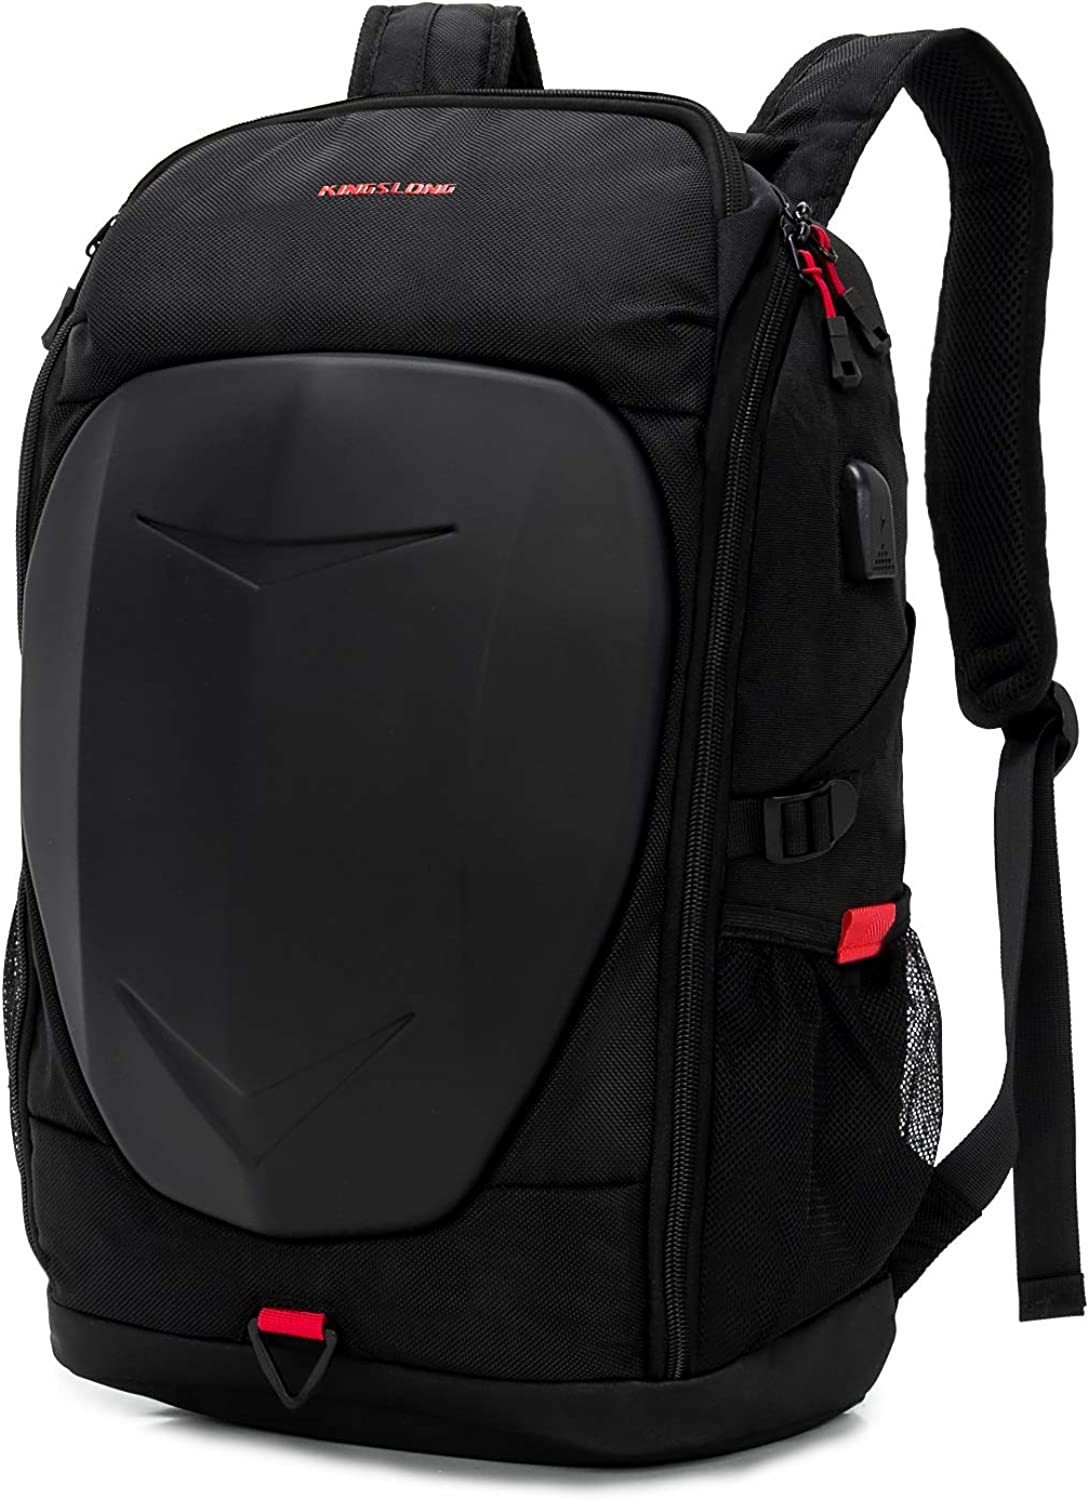 KINGSLONG 17 Inch Outdoor Laptop Backpack for Mens Travel Gaming Motorcycle Work Backpack Waterproof